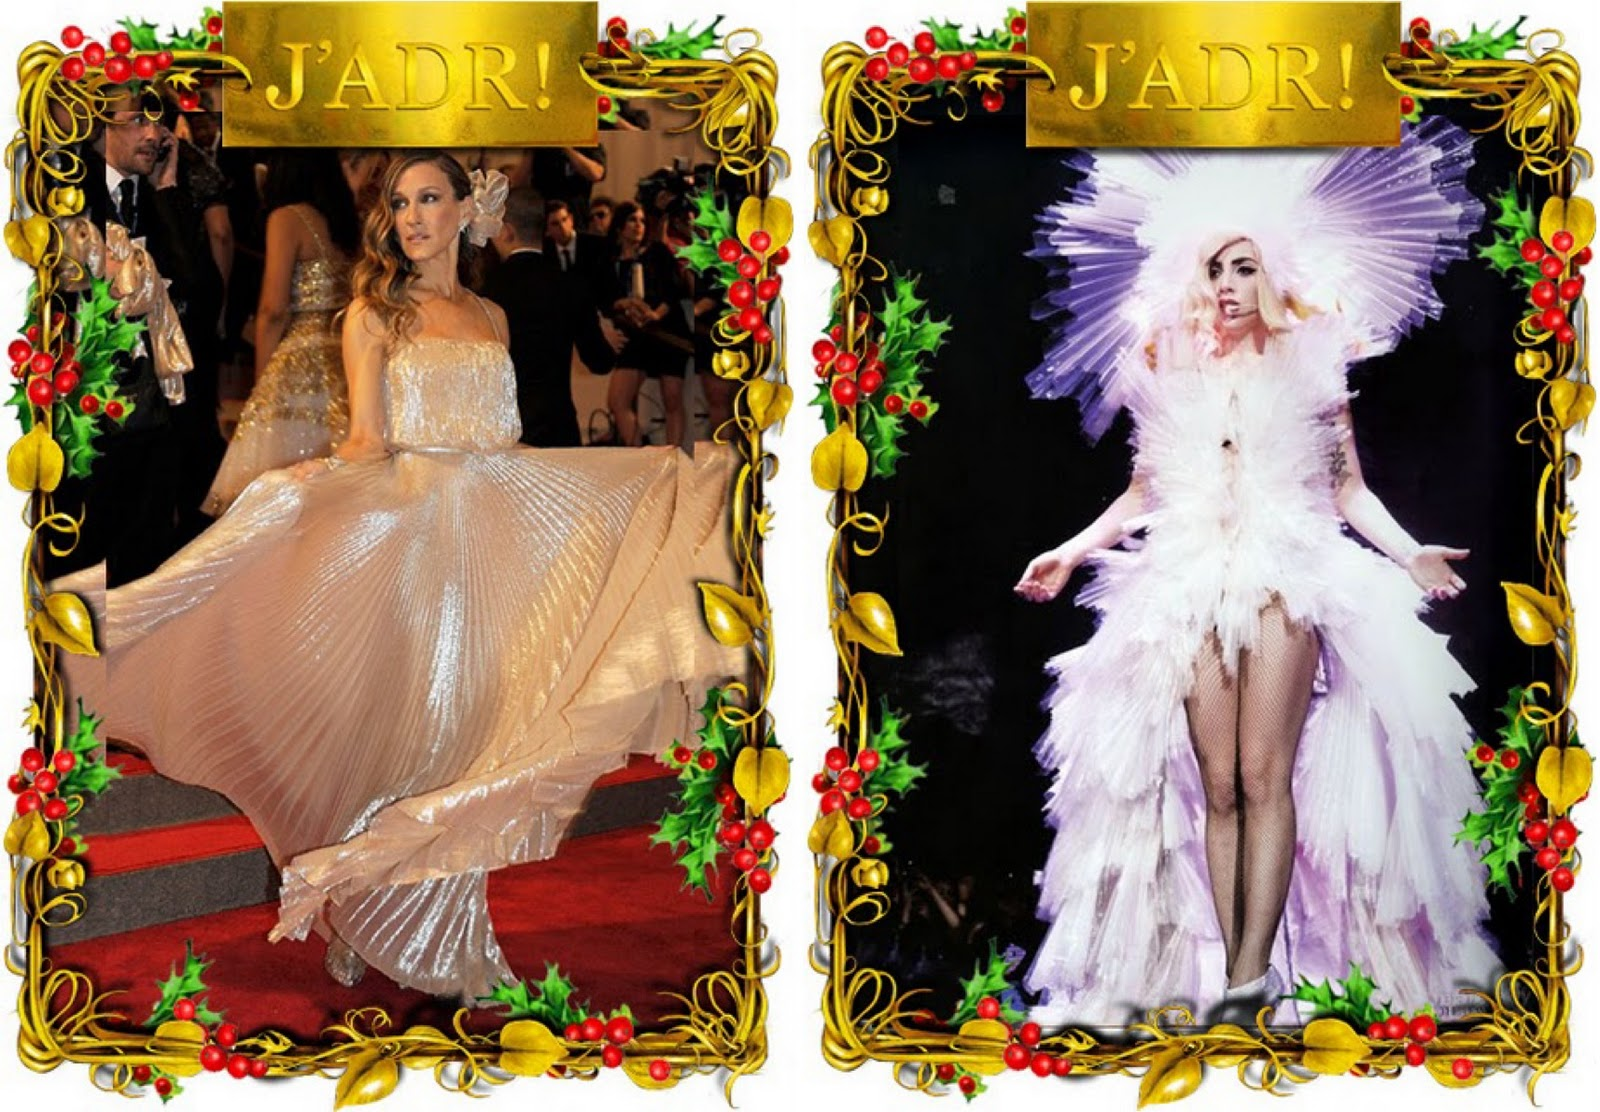 http://2.bp.blogspot.com/_PfmV3qvy8FY/TRJwYWZXArI/AAAAAAAAAk4/OMnhNFrEOg4/s1600/la+modella+mafia+9.+Sarah+Jessica+Parker+in+Halston+10.+Lady+Gaga+in+The+House+of+Gaga+10+BEST+DRESSED+of+the+Year+via+annadellorusso.jpg